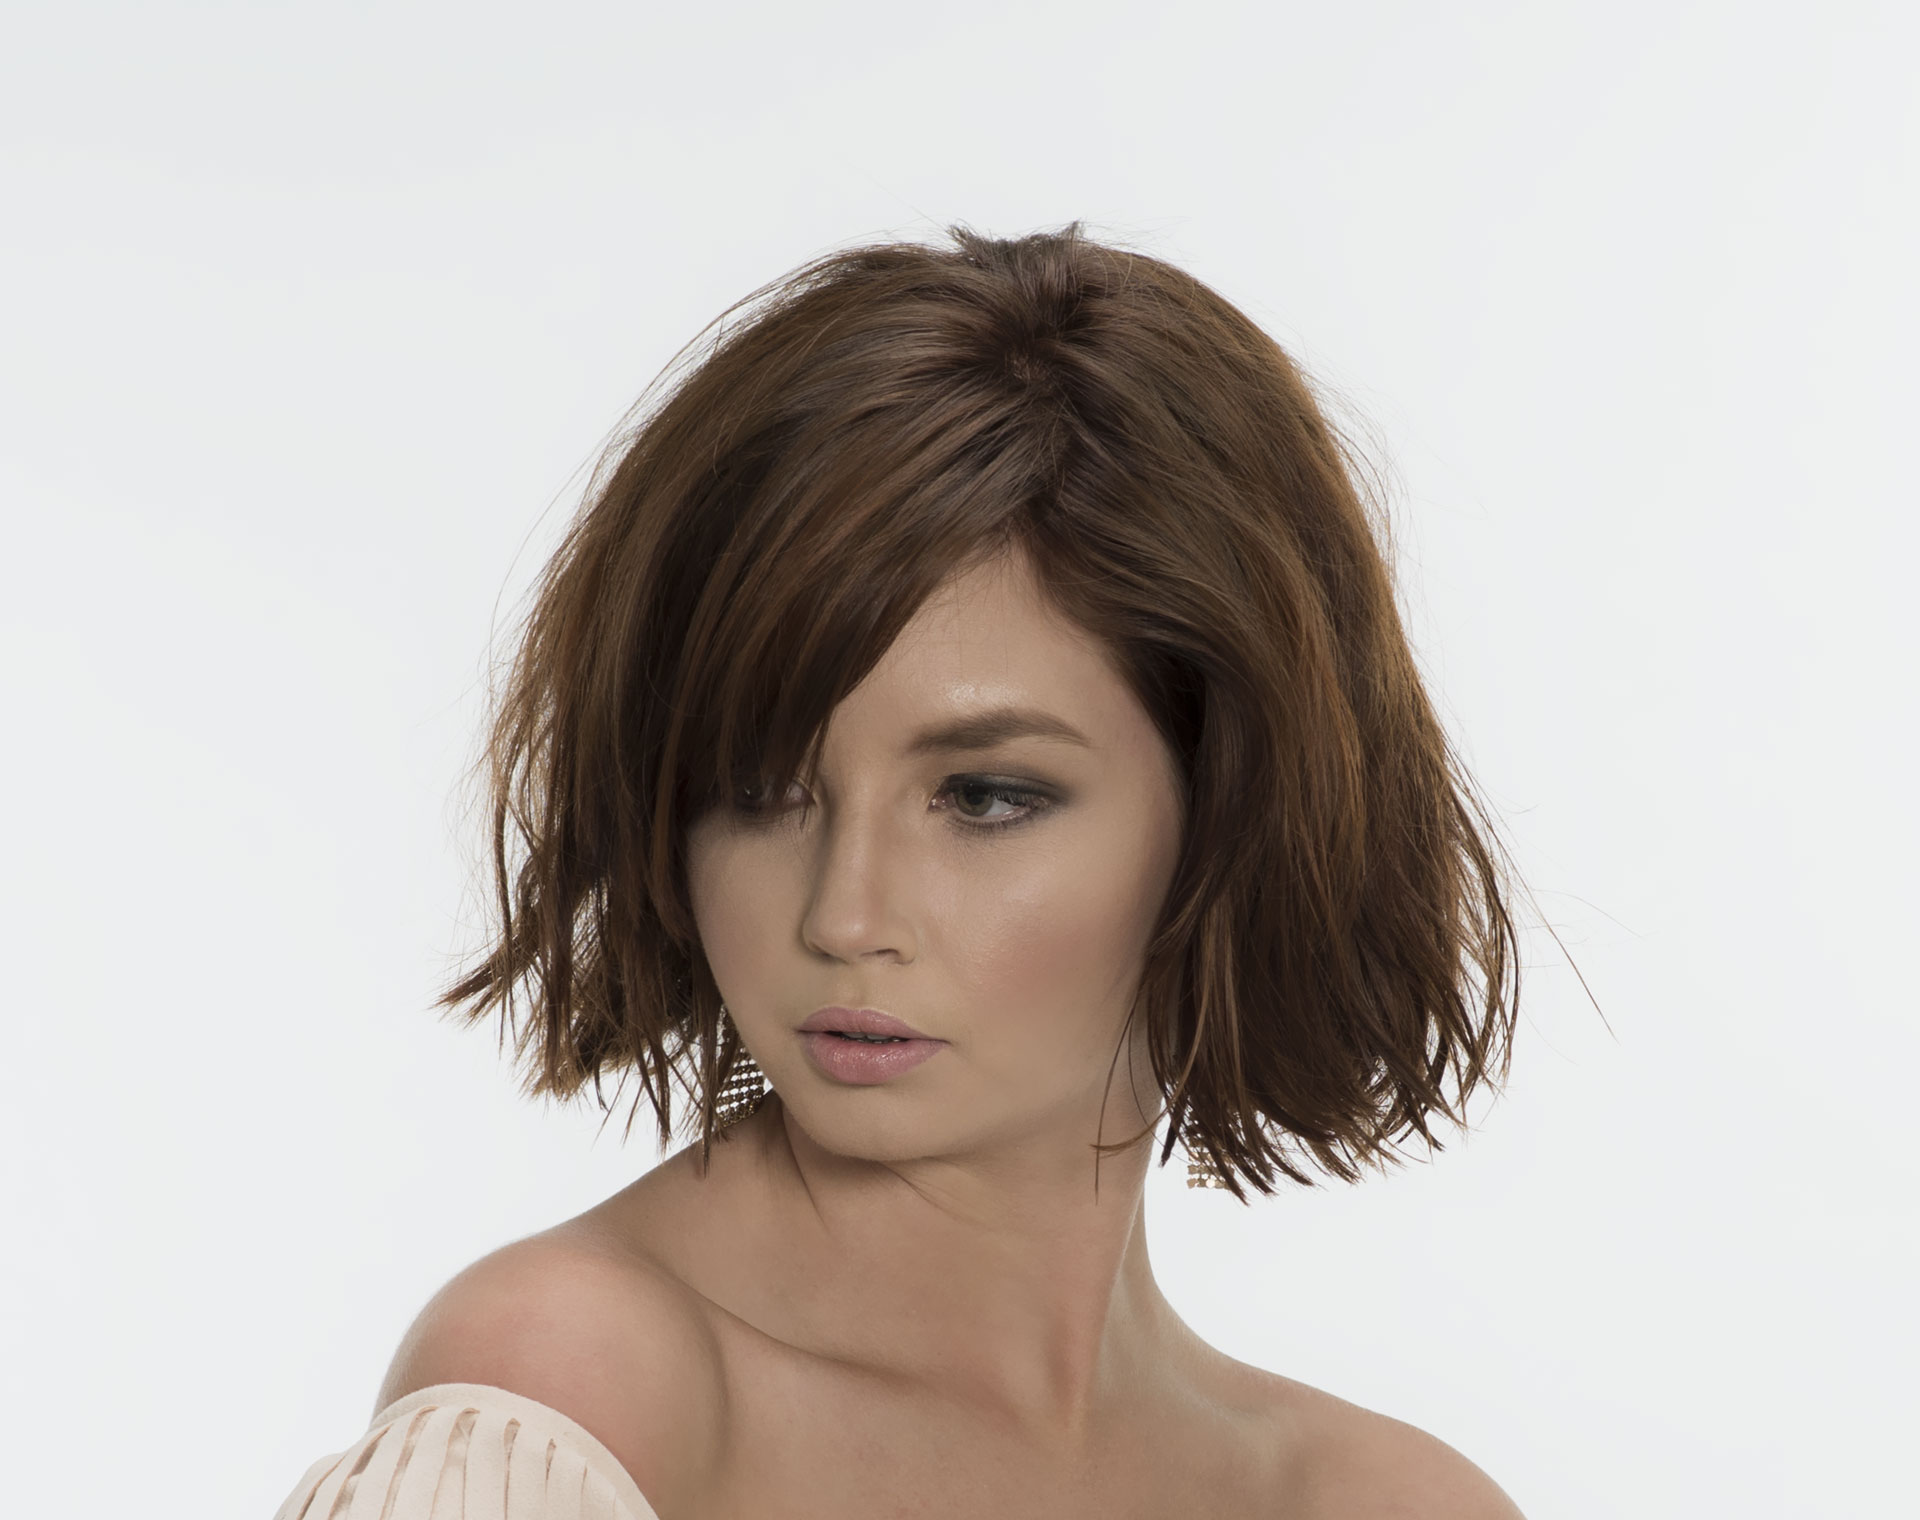 Best Hair Salon For Bob Hairstyle In Dallas Plano Frisco Allen